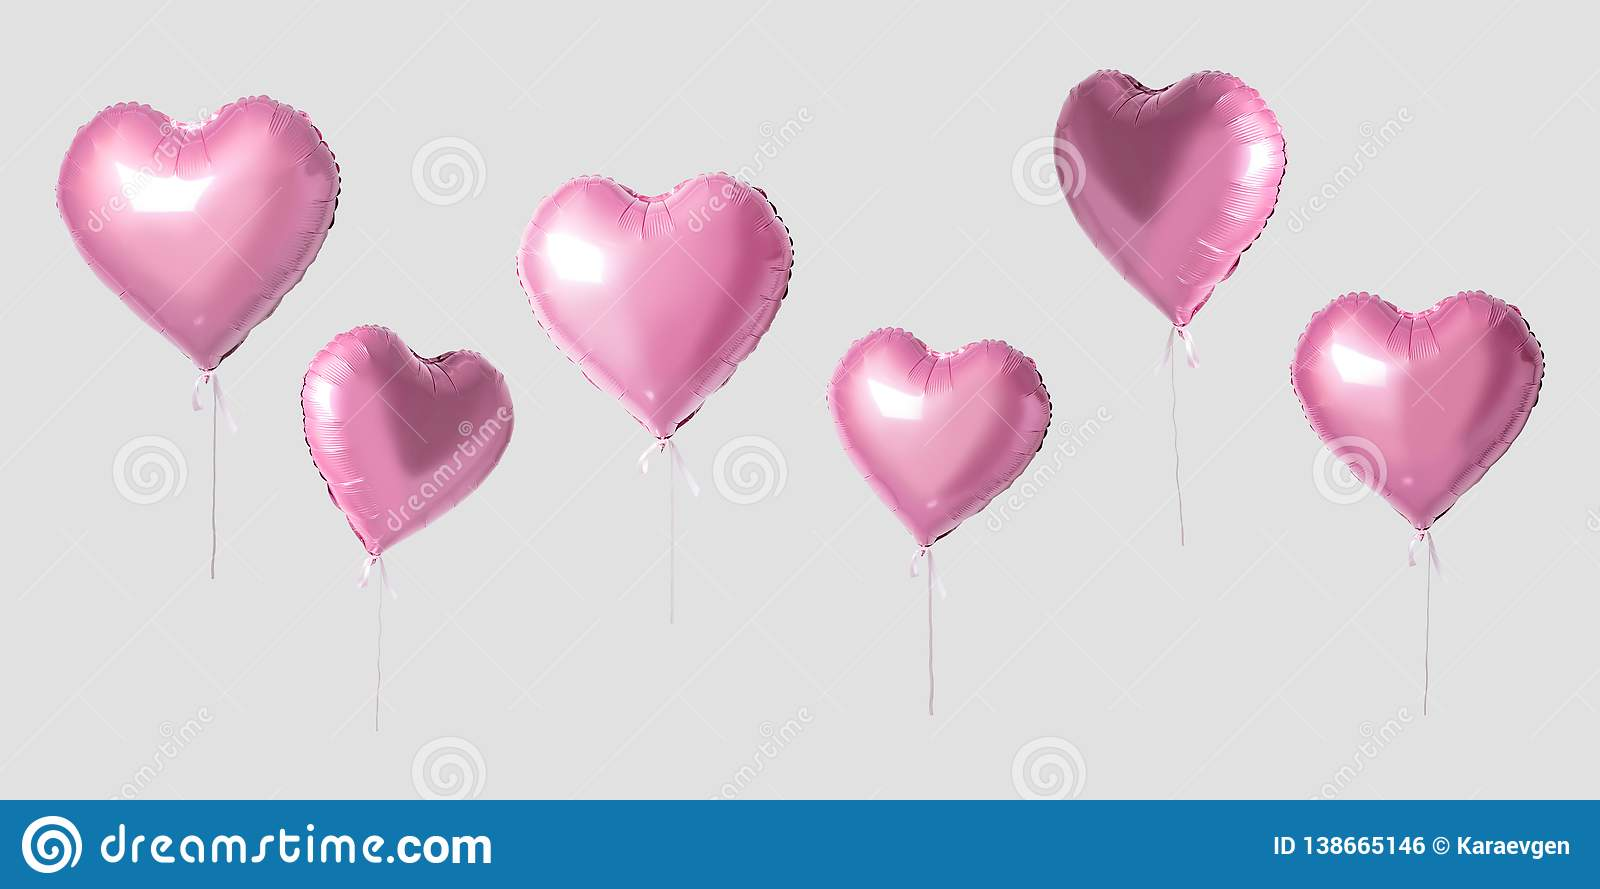 Many pink heart balloons on bright background. Minimal love concept